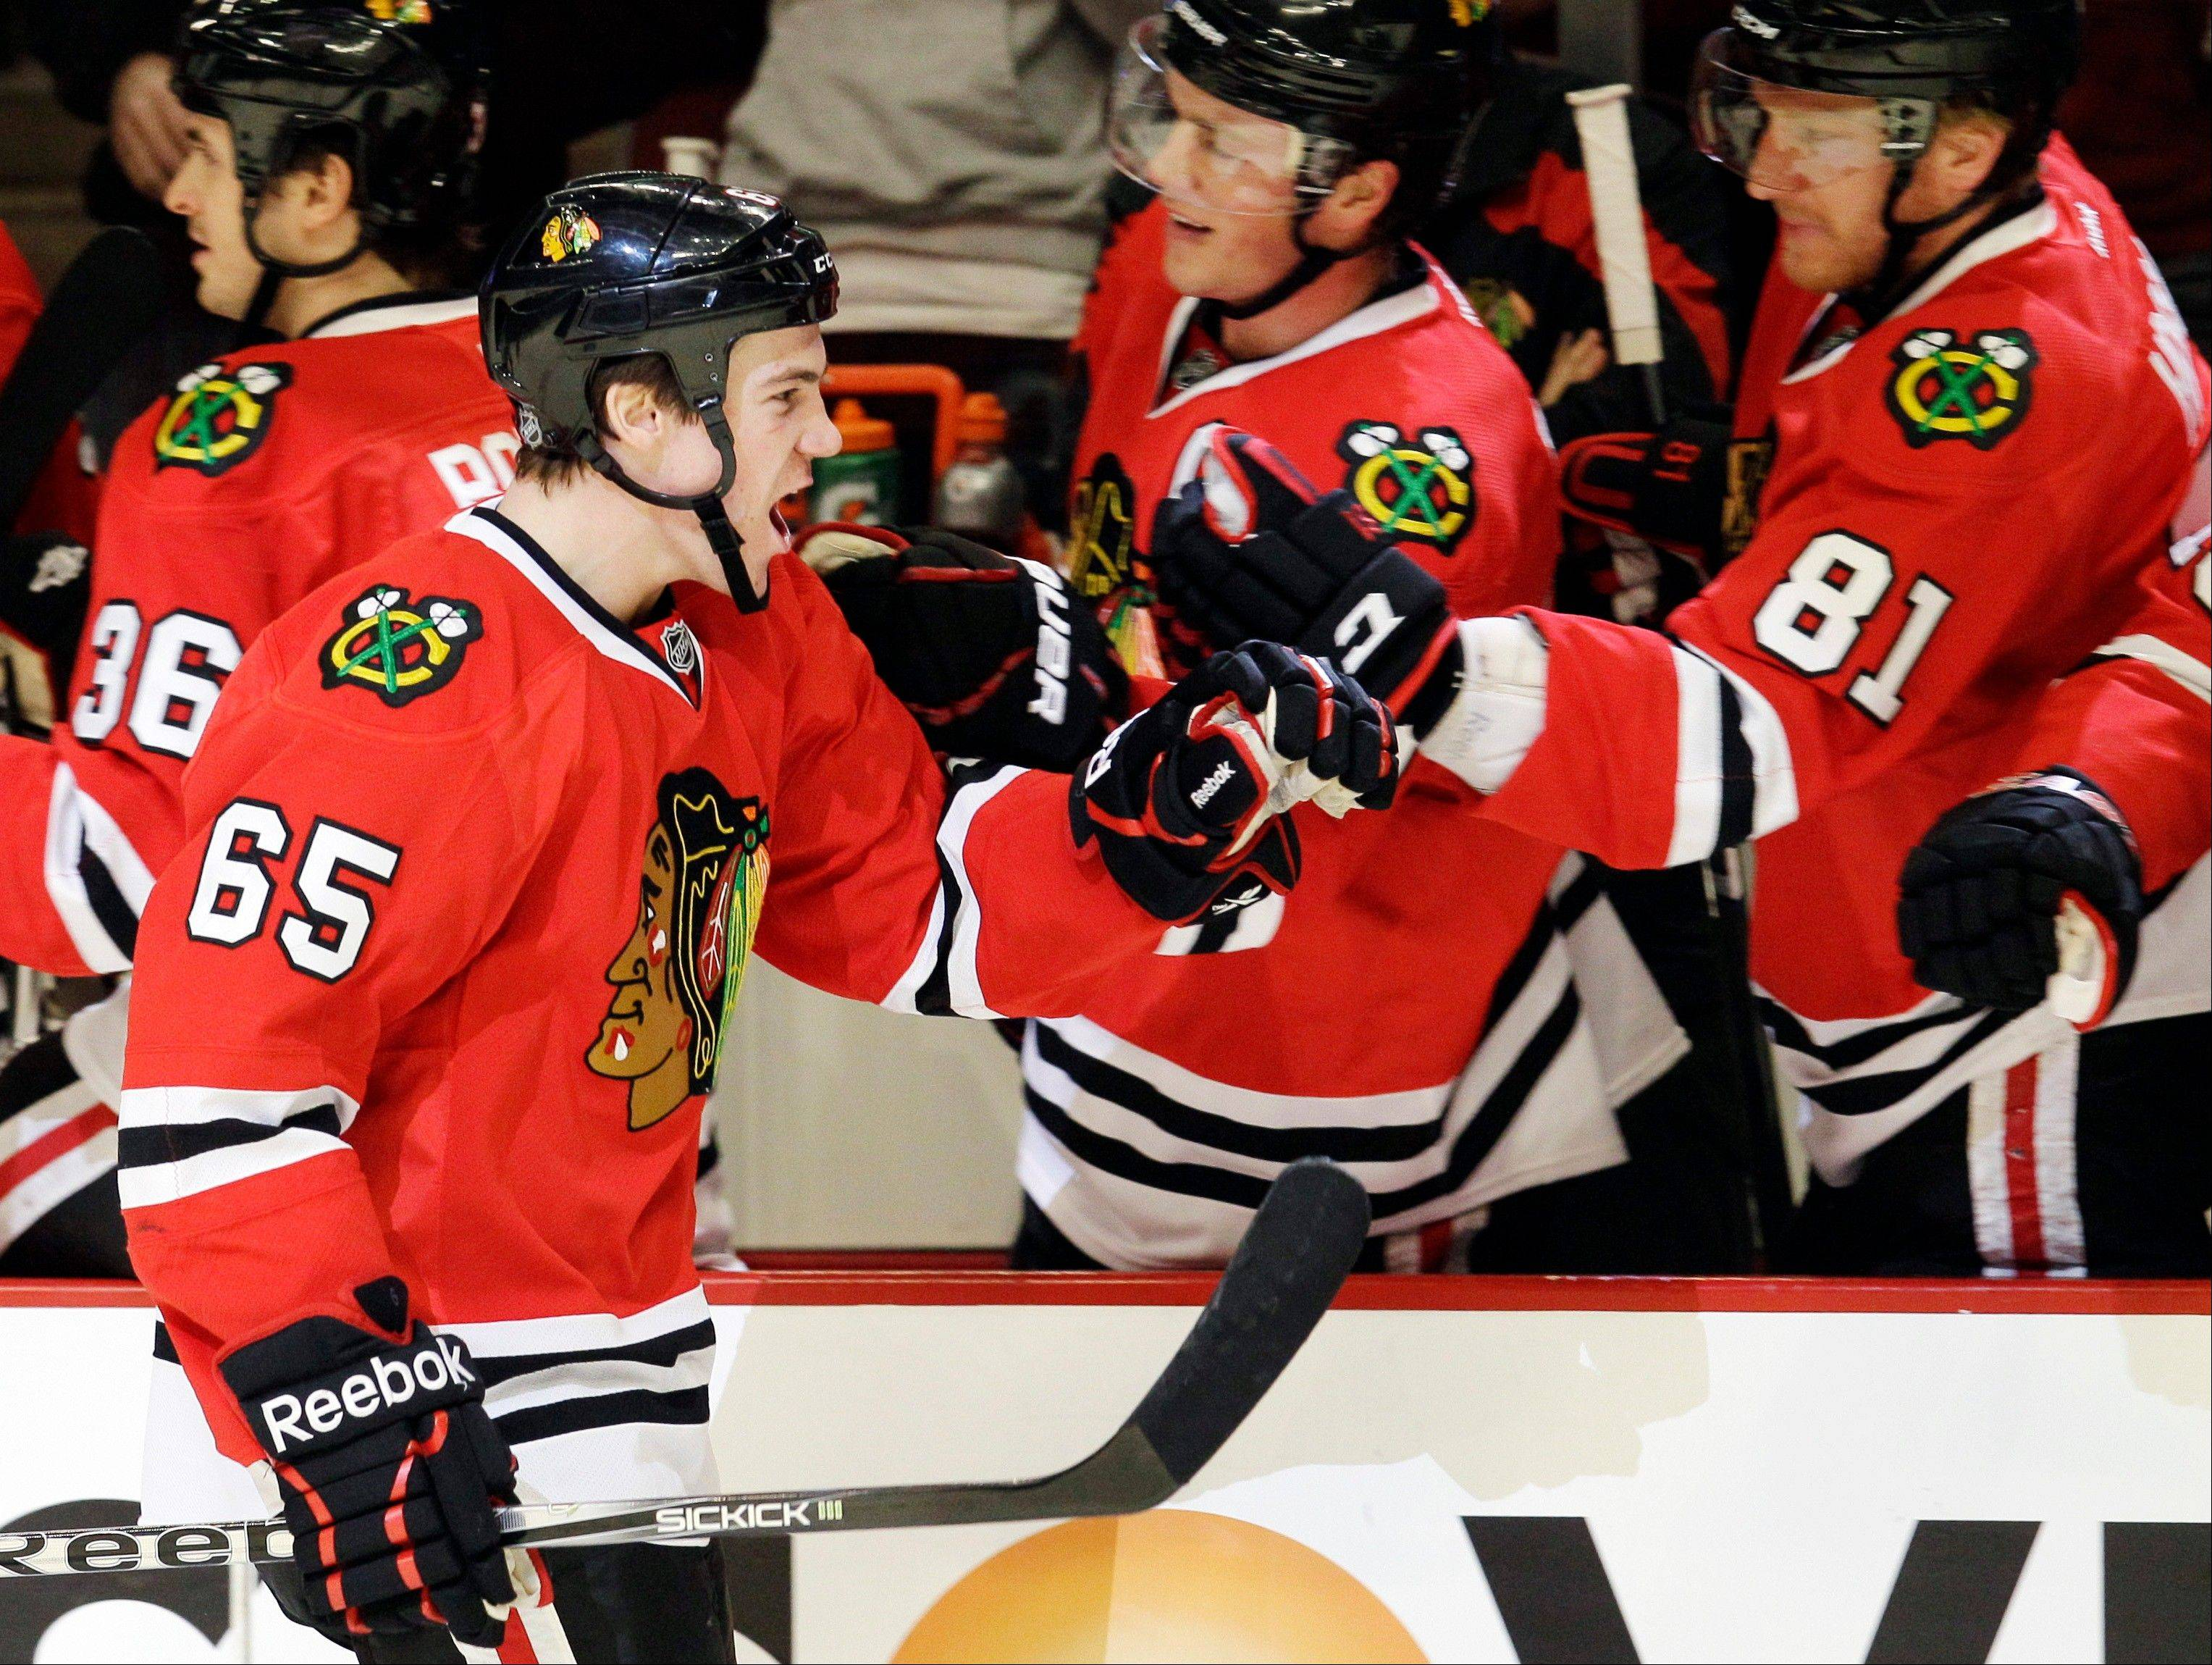 Rookie winger Andrew Shaw celebrates with teammates after scoring a goal against the Buffalo Sabres on Jan. 18. Shaw finished the season with 12 goals.